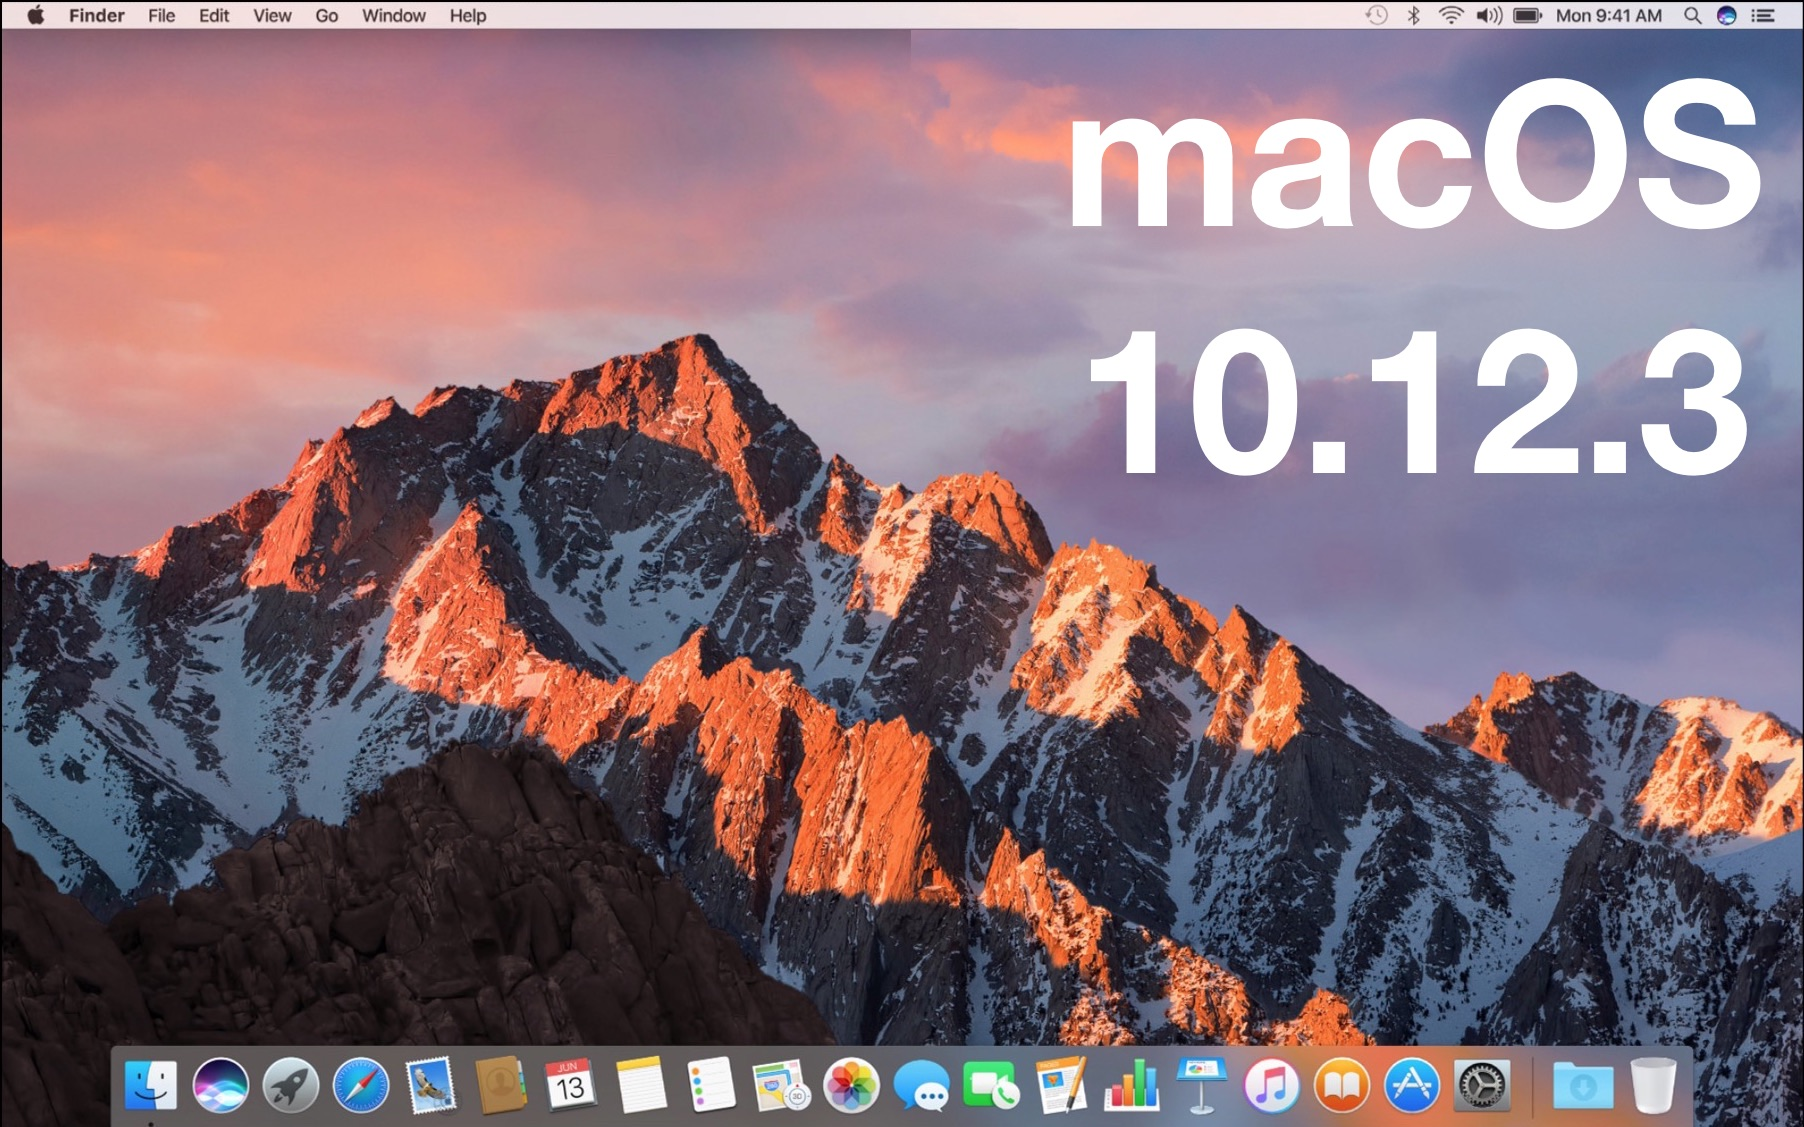 Adobe Download For Mac Os X 10.12.3